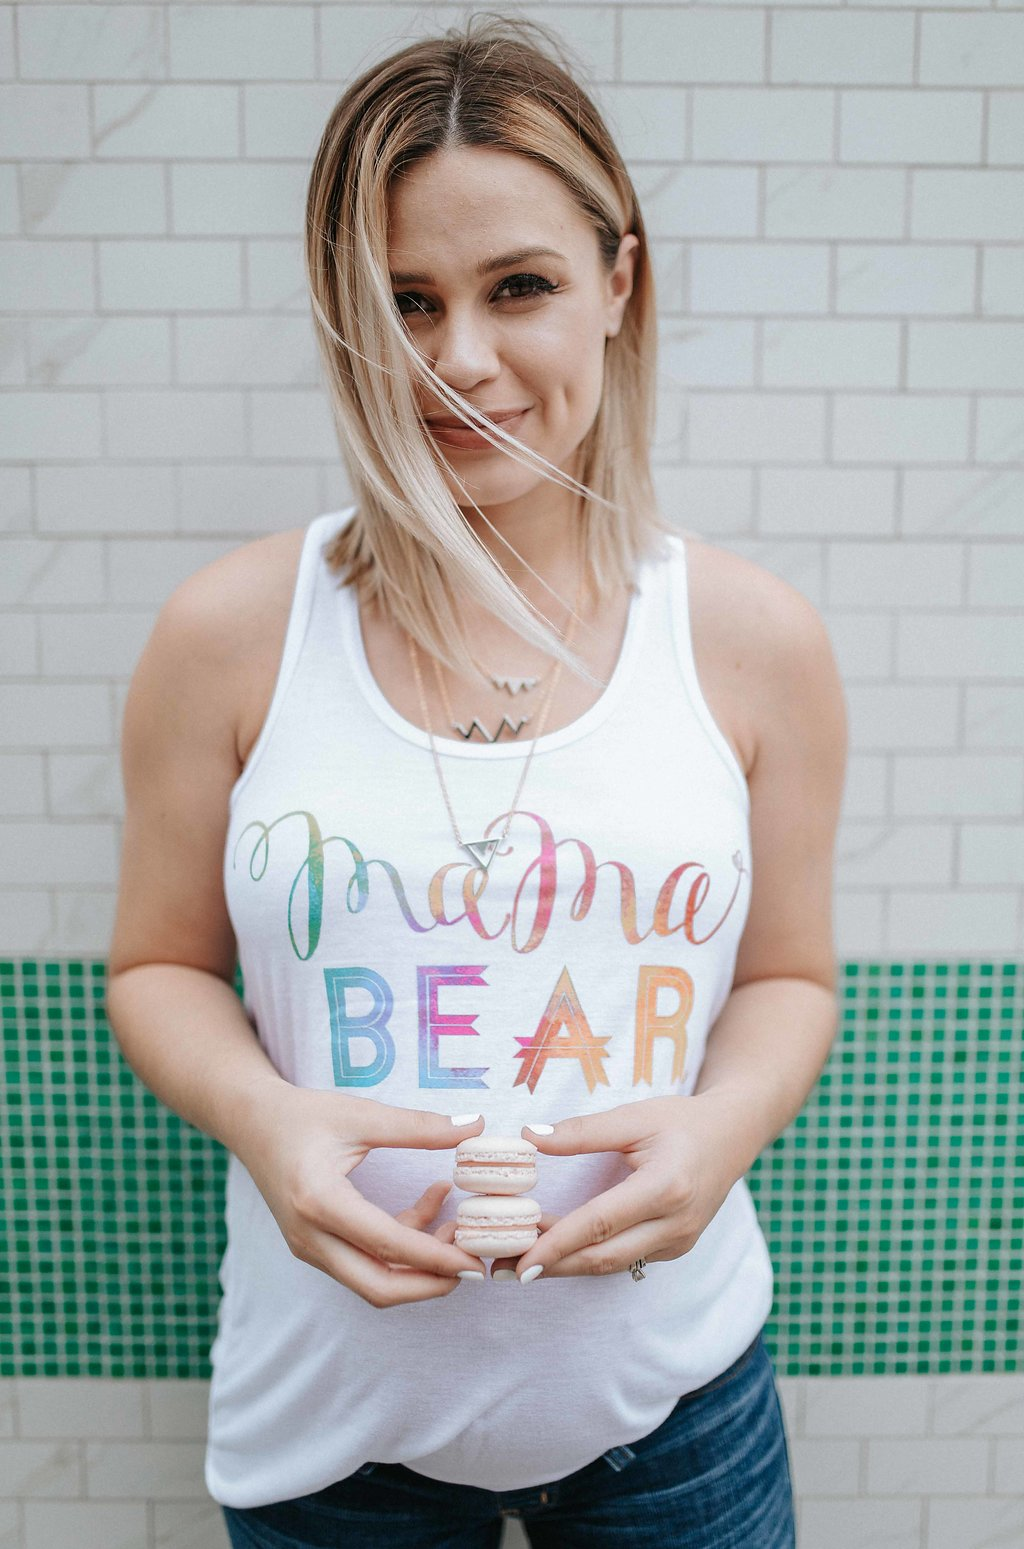 Houston lifestyle blogger Elly from Uptown with Elly Brown is ppening up and sharing what life has been like after miscarriage and she's coping with it all.